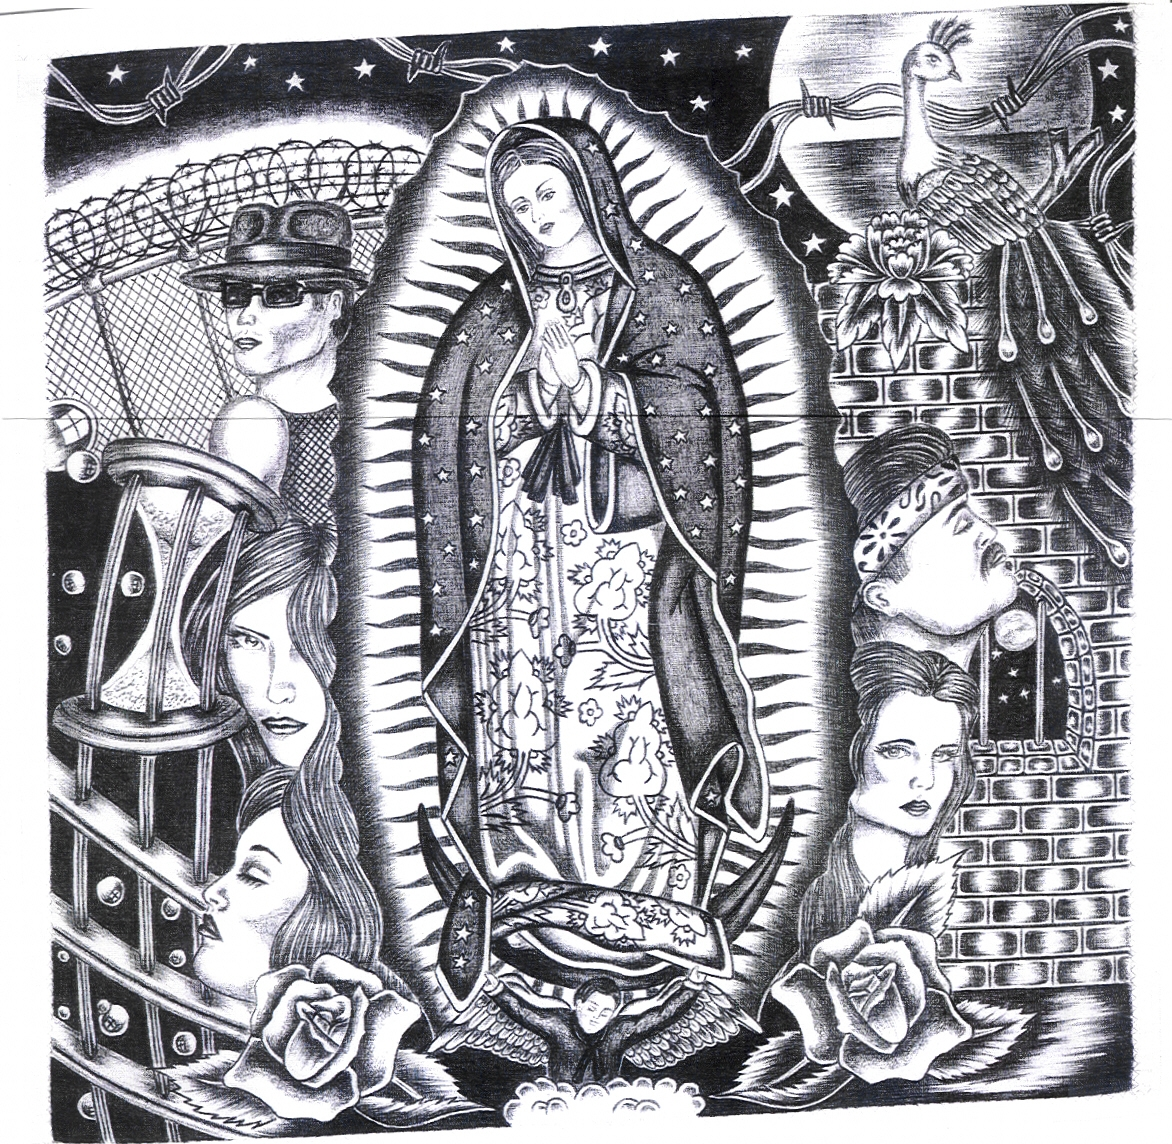 Black and white artwork by Chicano prisoner featuring Mary surrounded by faces